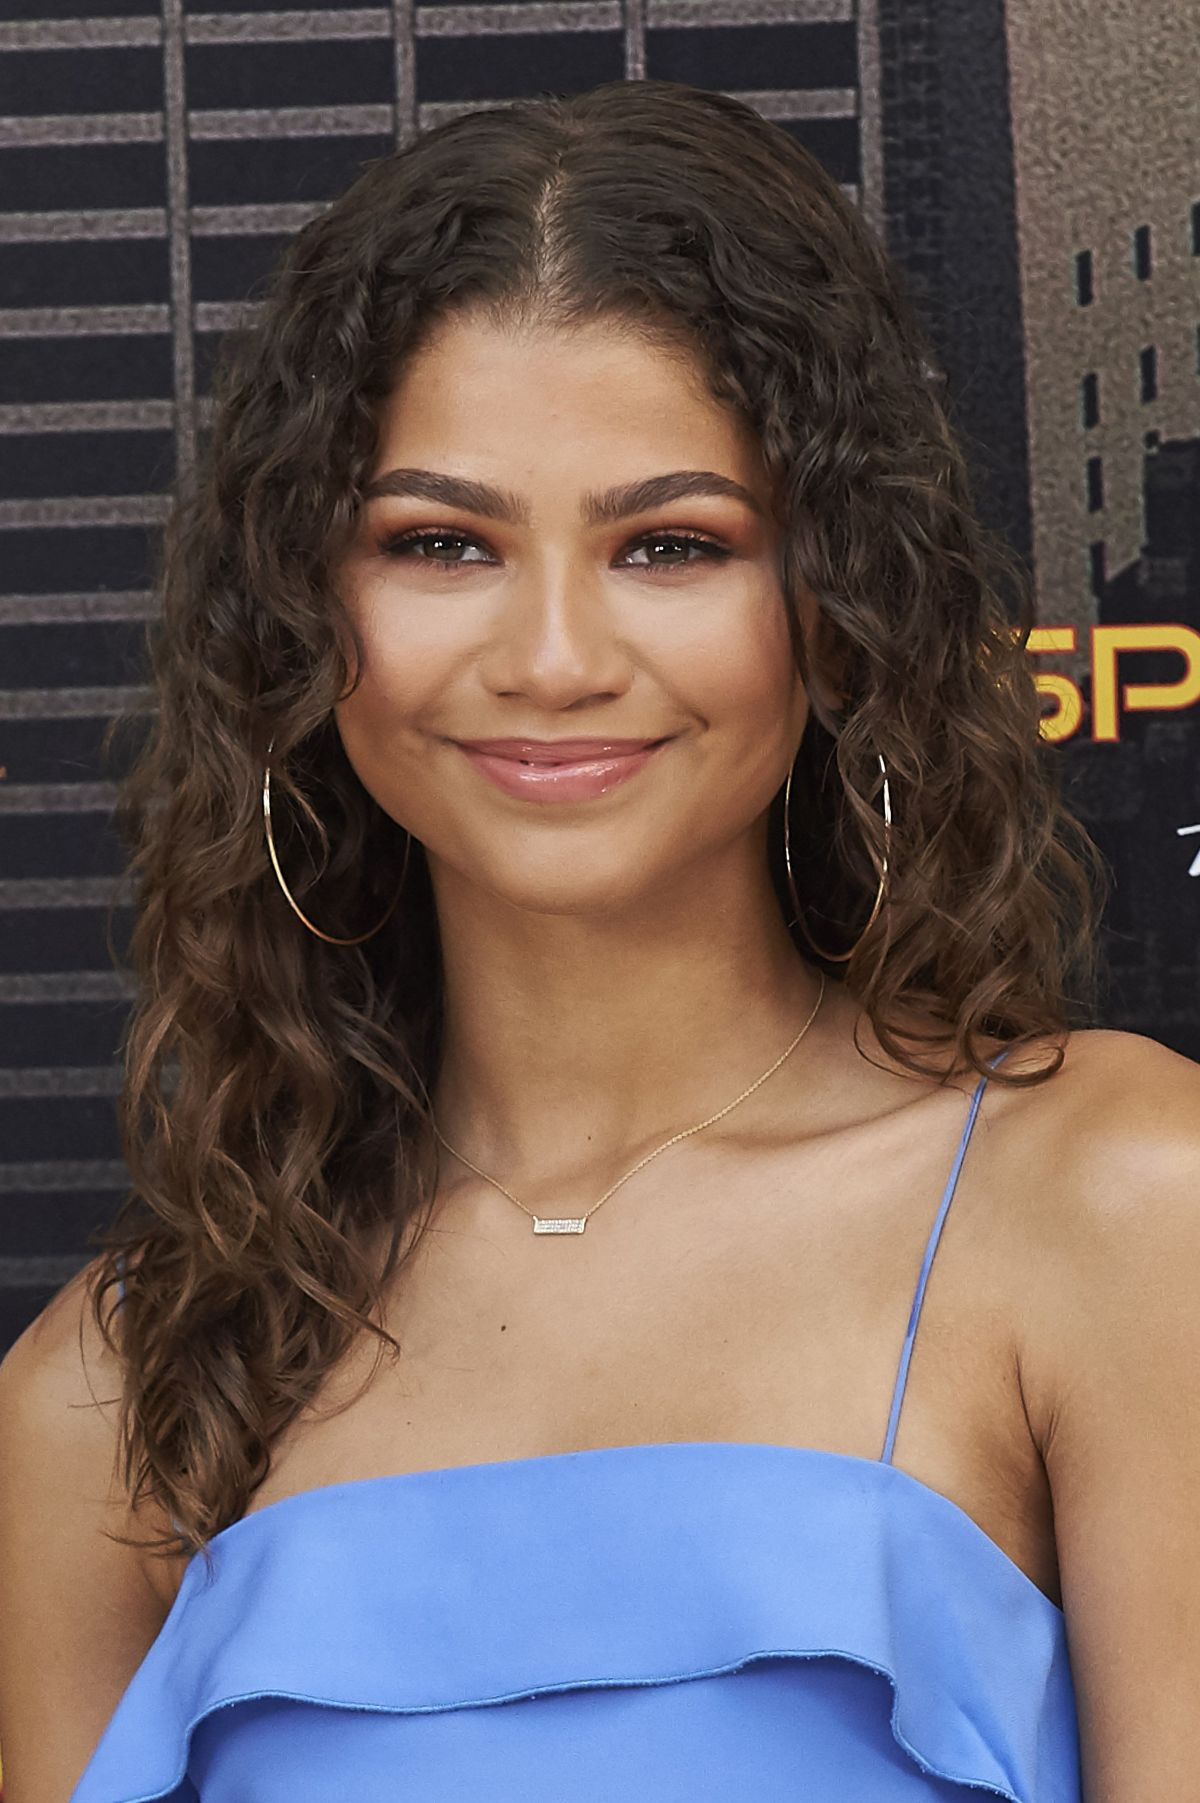 Zendaya Coleman At 'Spider-Man: Homecoming' Madrid ...